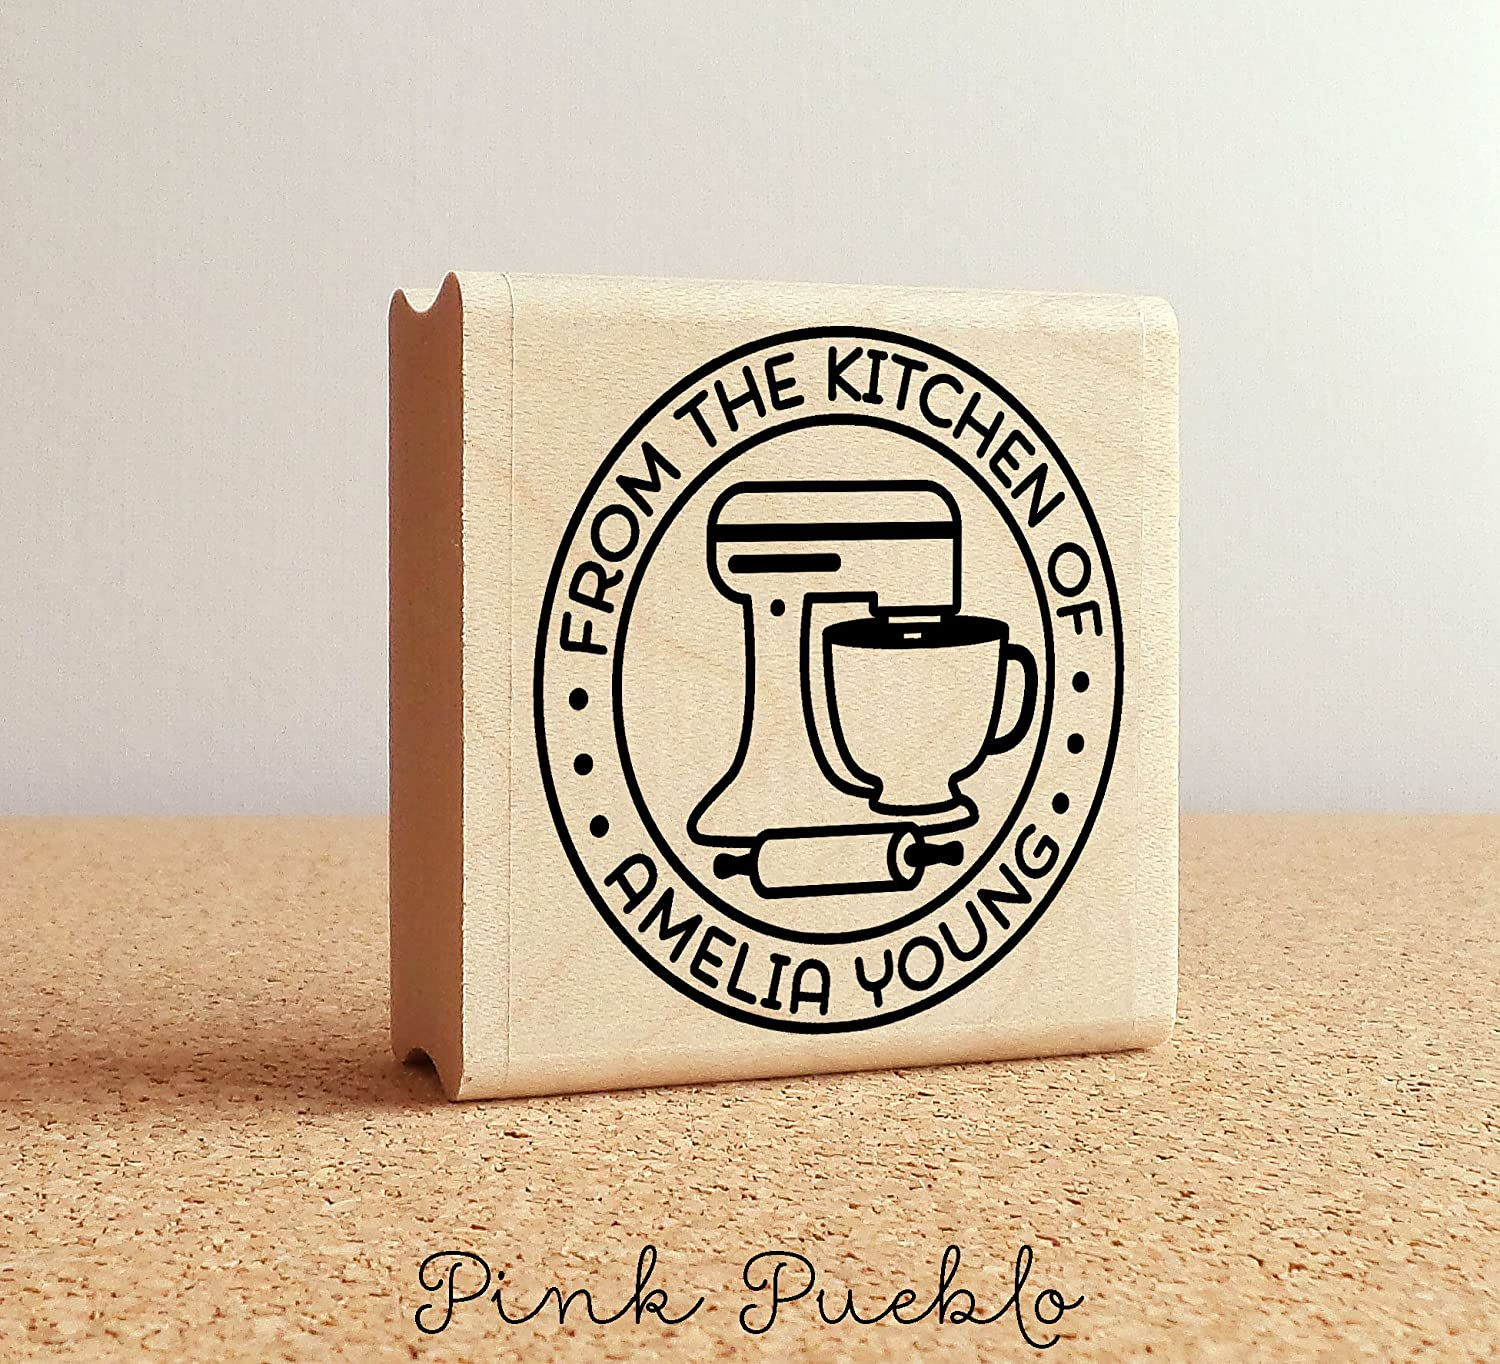 Personalized Baking and Cooking Rubber Stamp, From the Kitchen of Stamp, Great for Baking Gifts